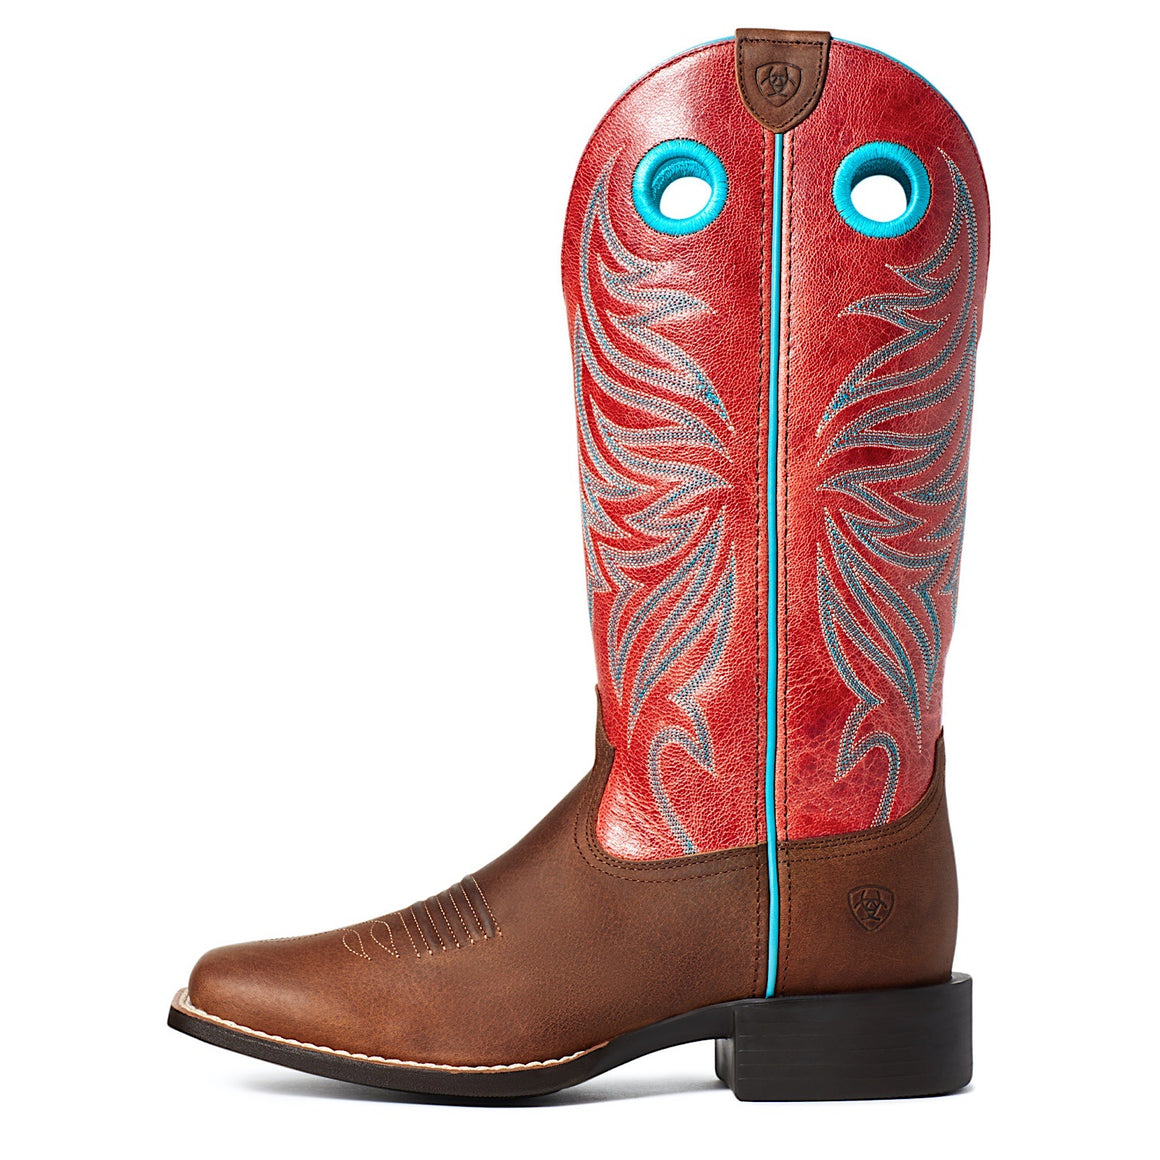 Ariat Womens Round Up Ryder Western Boot Barrel Brown/Red